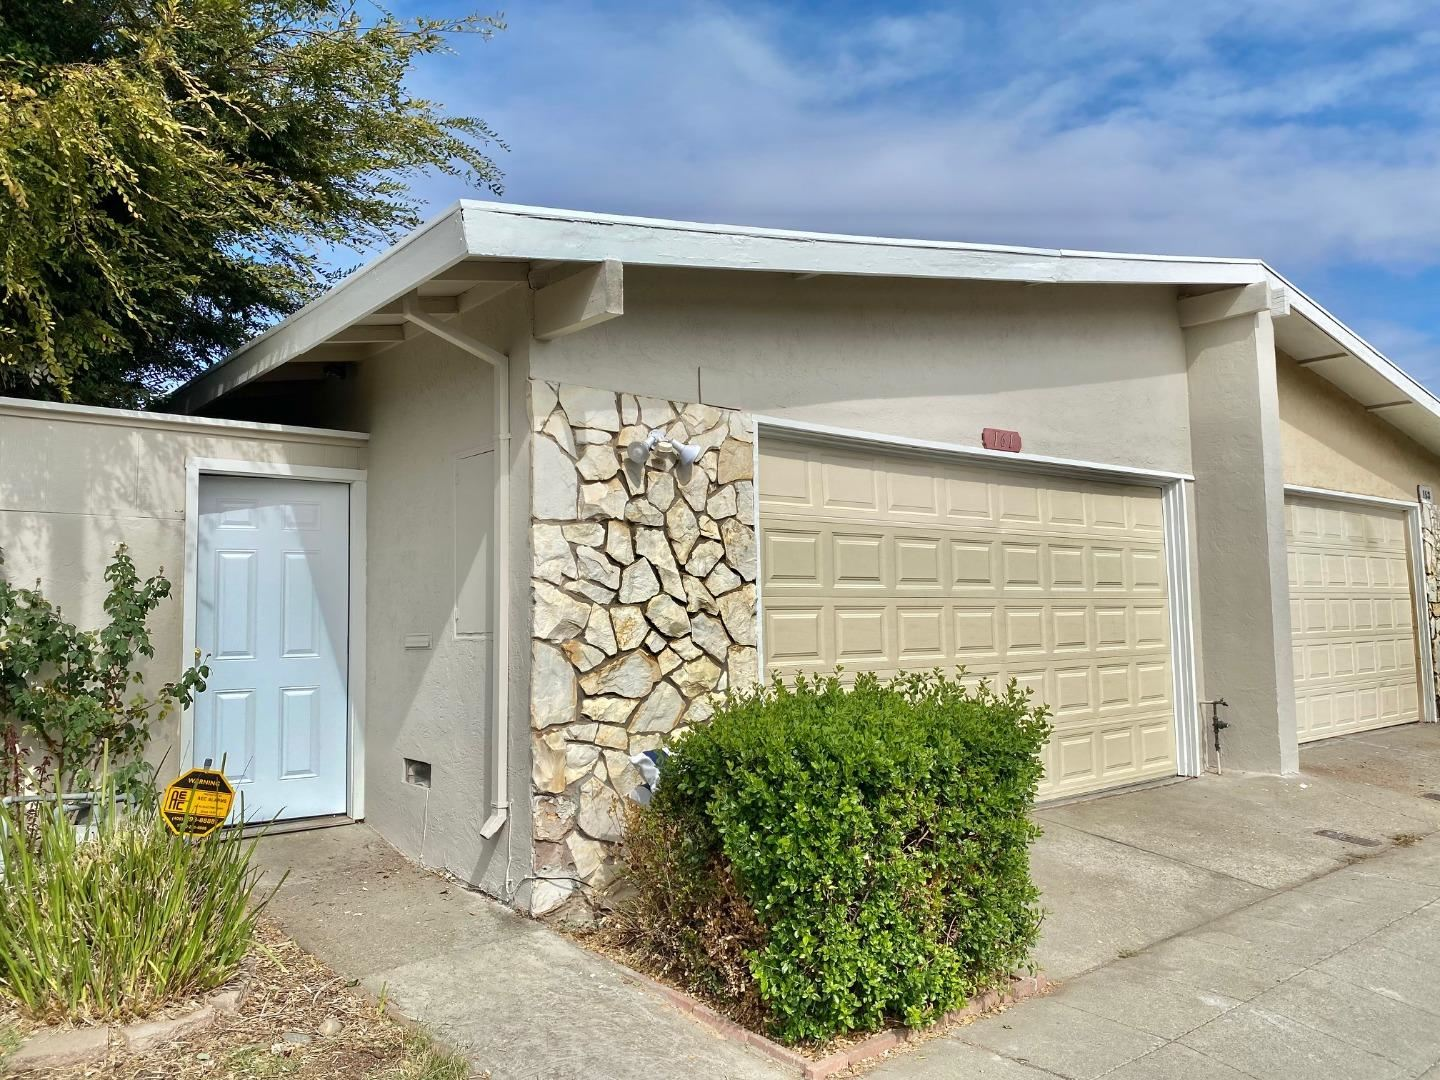 Photo for 161 Lonetree Court, MILPITAS, CA 95035 (MLS # ML81866809)